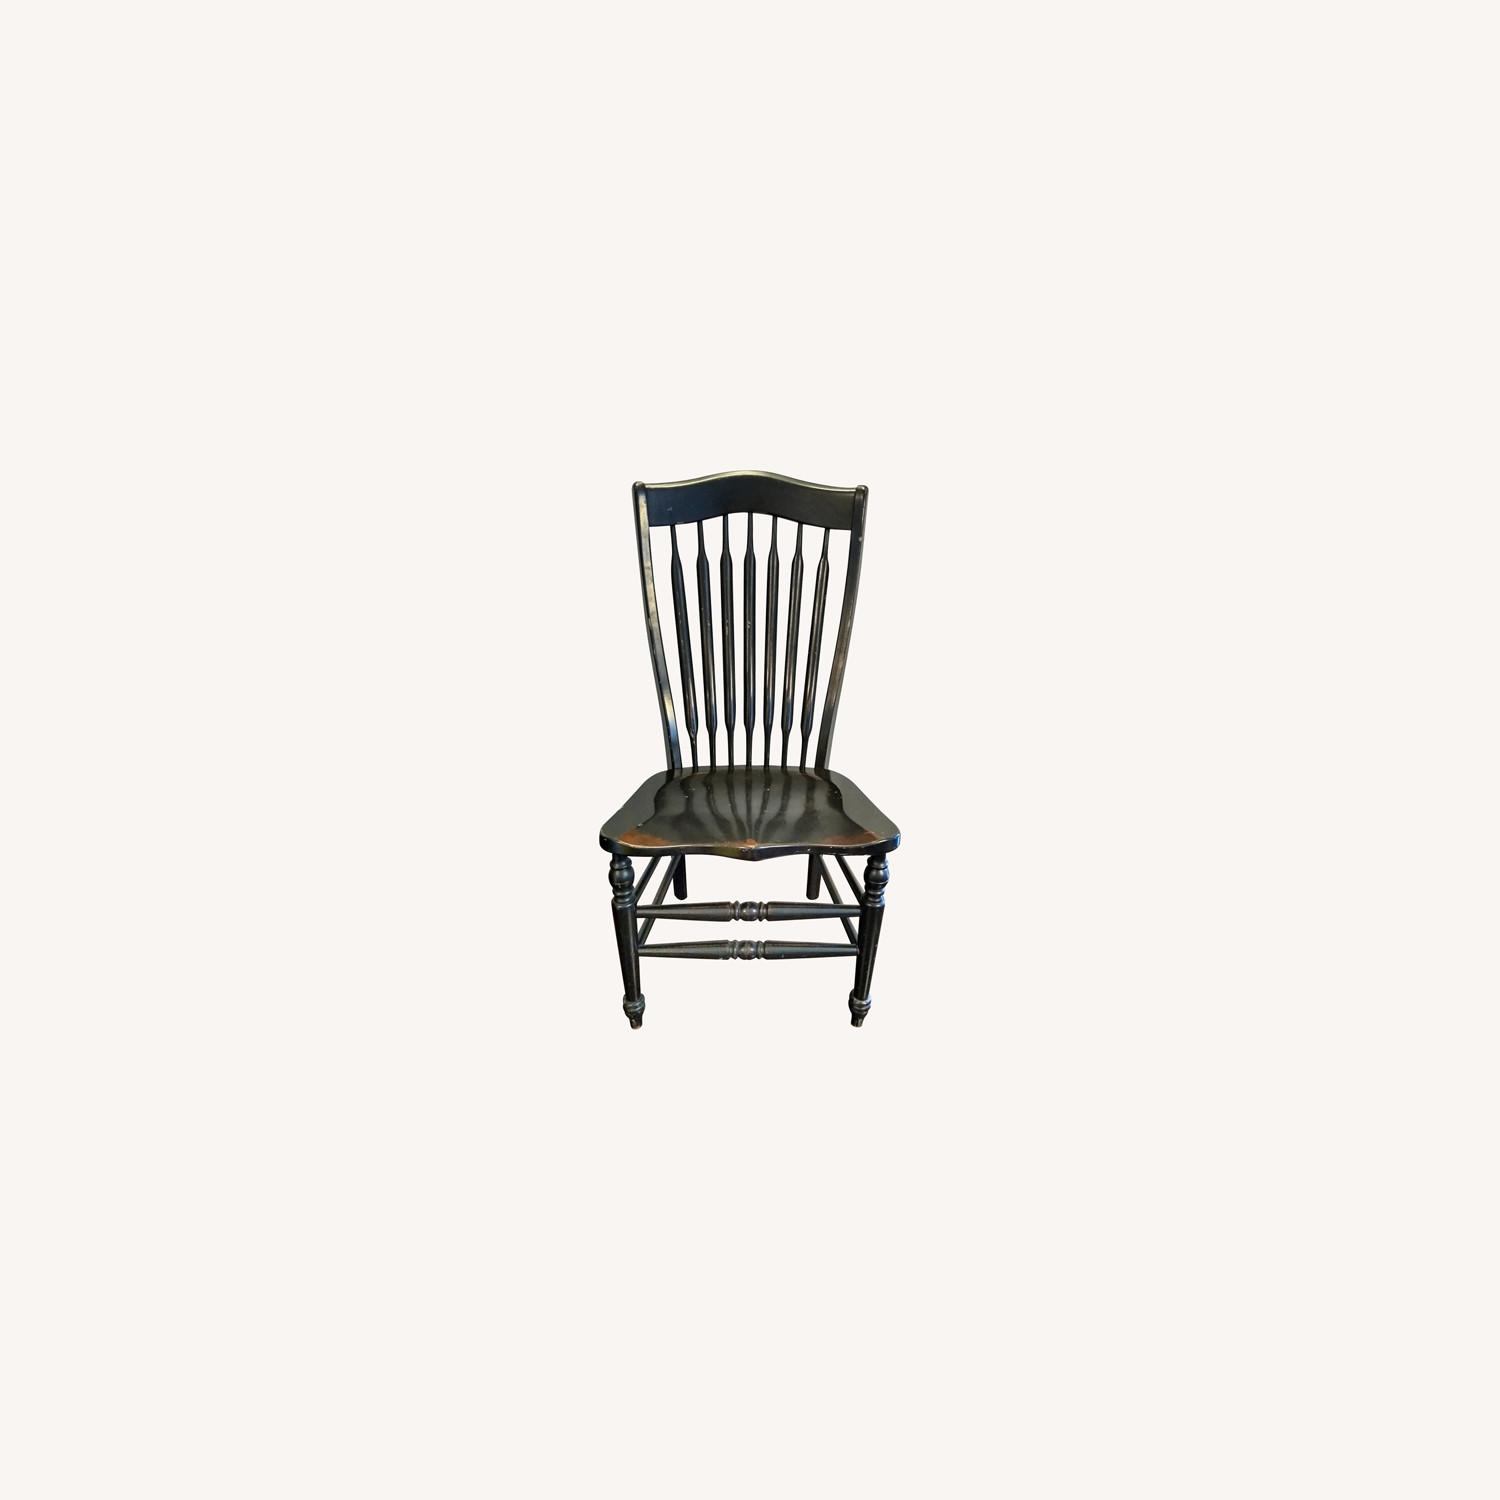 Five Vintage Nichols & Stone Windsor Chairs - image-0